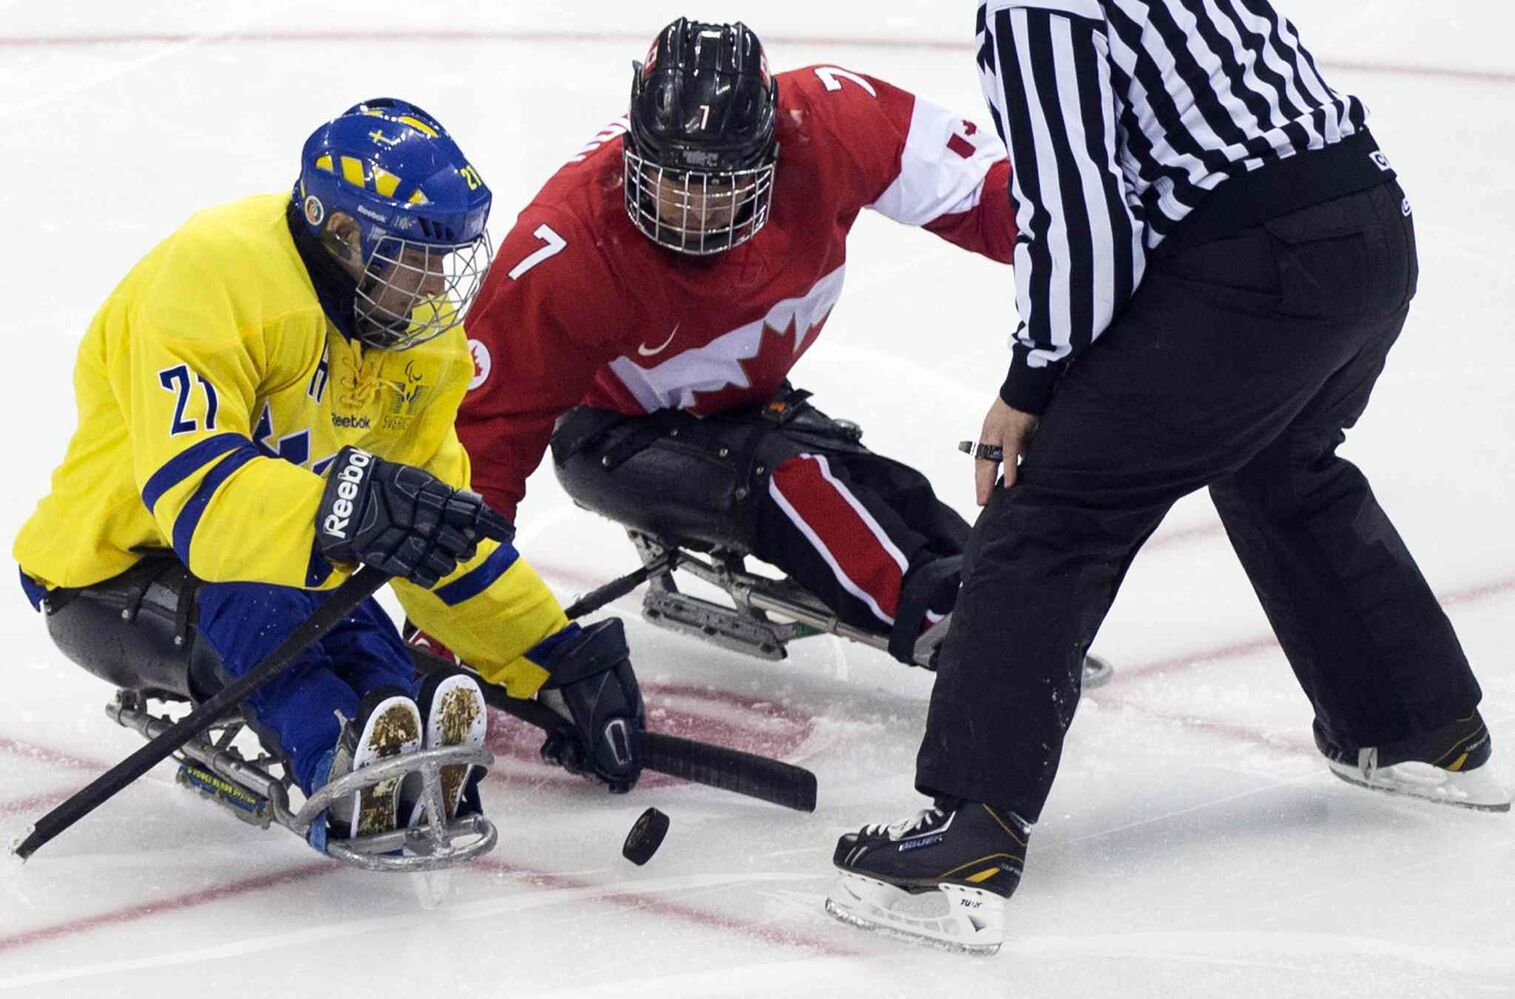 Marc Dorion of Canada, right, Marcus Holm and of Sweden, left, fight for a puck during the ice sledge hockey match at the Shayba Arena at the 2014 Winter Paralympics in Sochi, Russia, Saturday, March 8, 2014.  (Pavel Golovkin / The Associated Press)